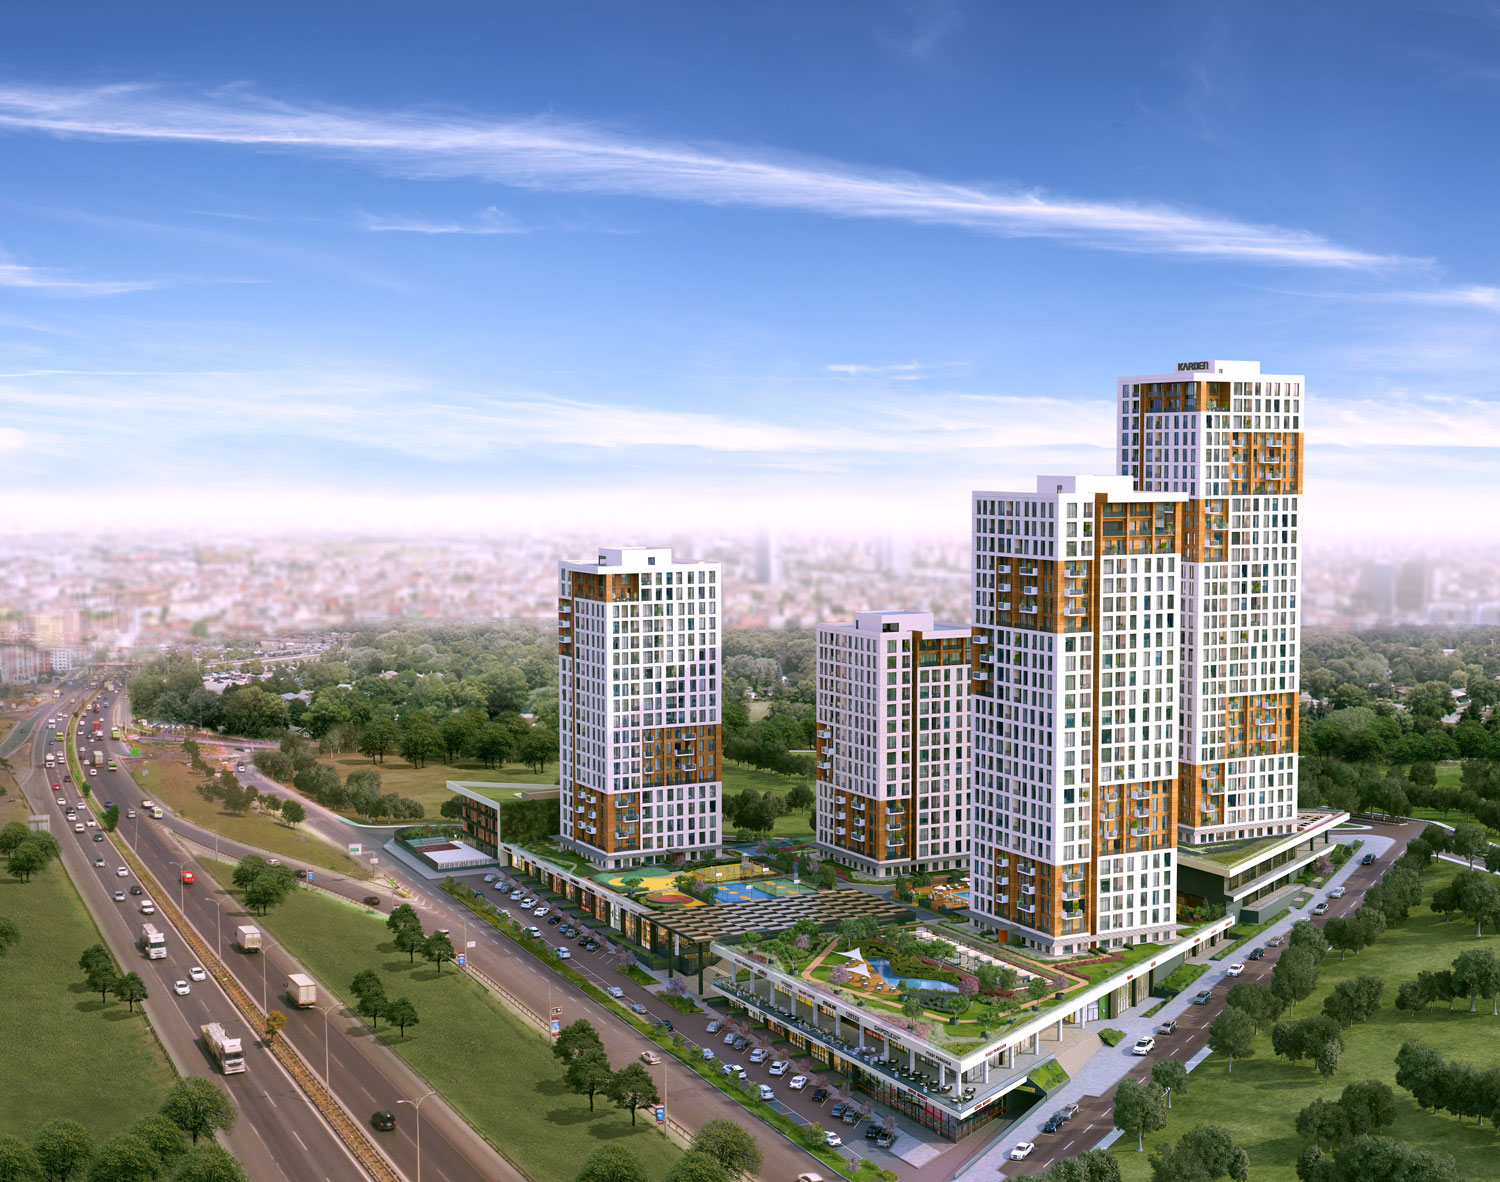 A huge family project near the metrobus in European Istanbul